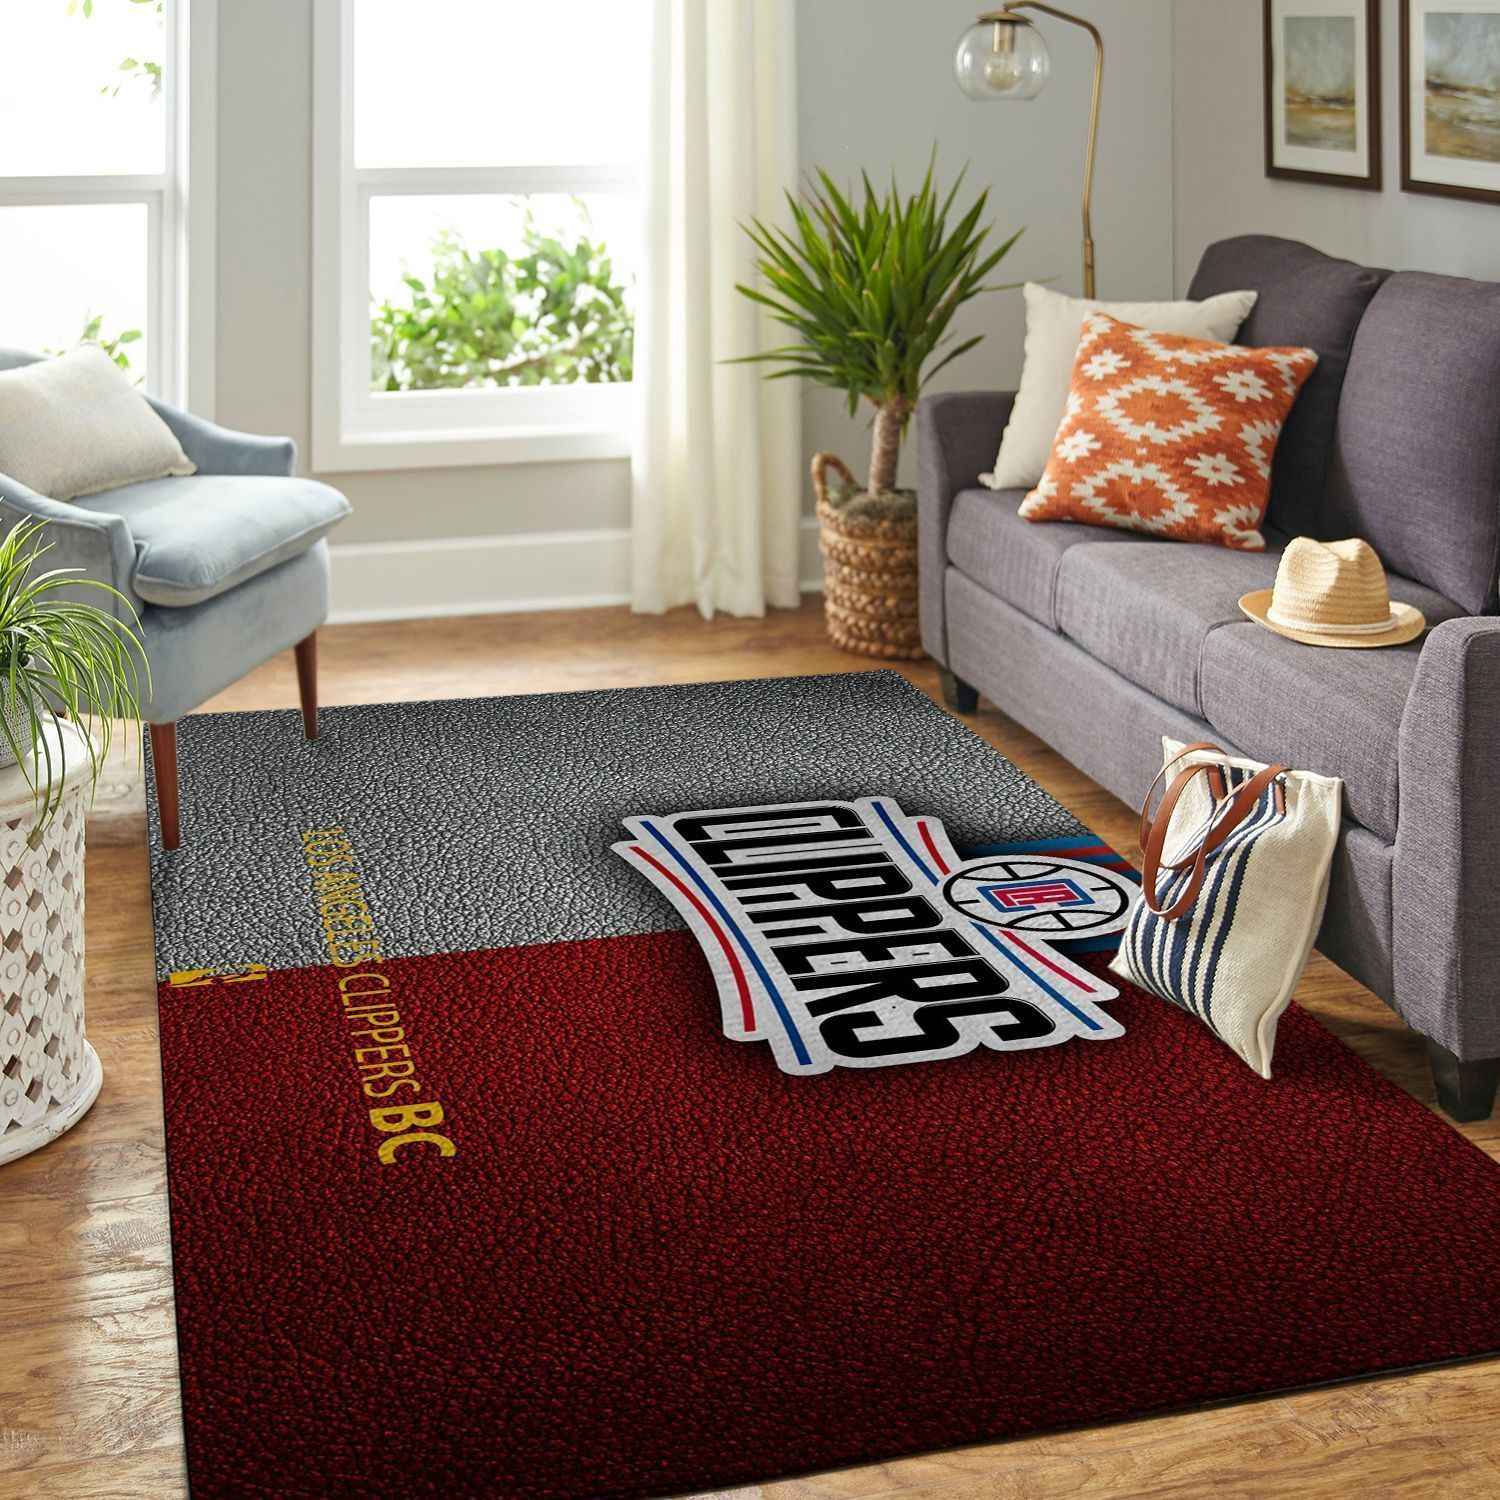 Amazon Los Angeles Clippers Living Room Area No3551 Rug